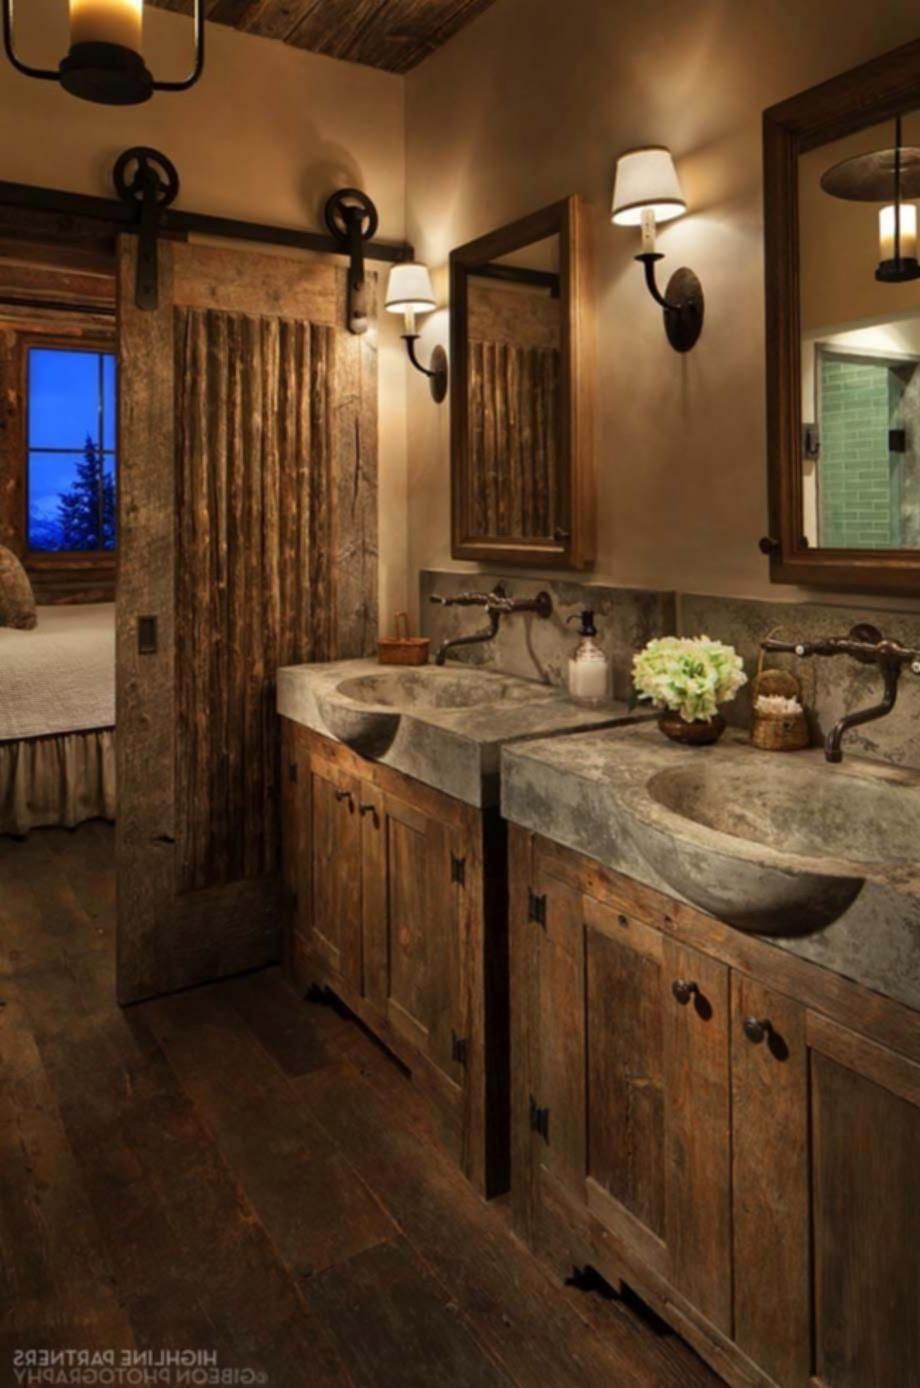 Country themed Bathroom Decor Lovely Country themed Bathroom Decor Diy